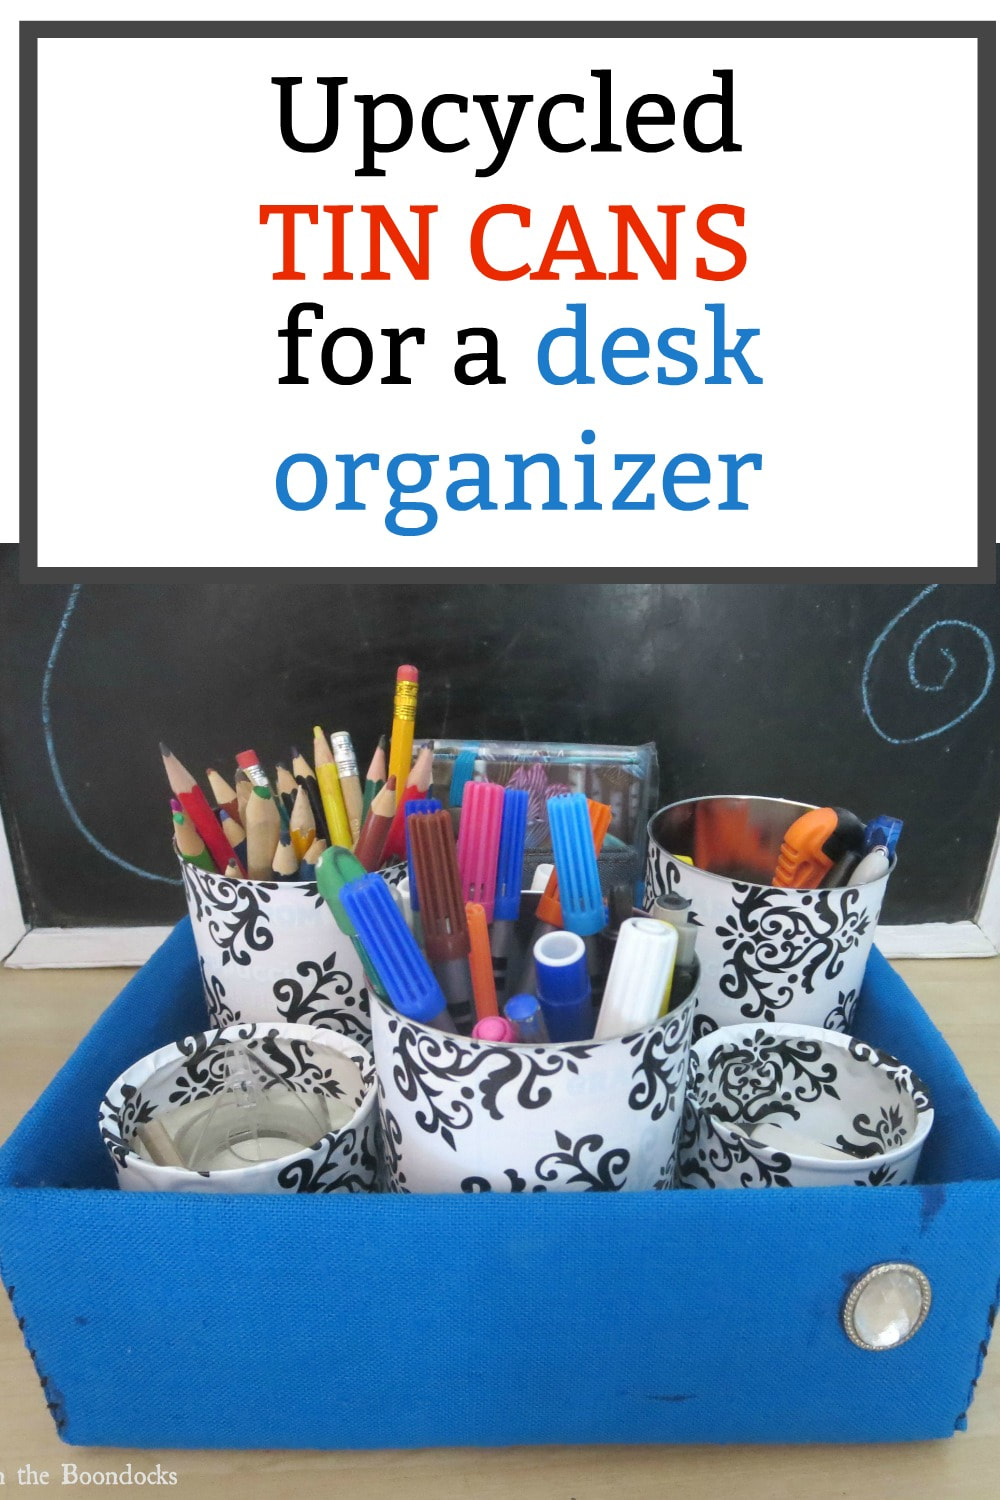 Upcycled tin cans for a desk organizer #tincans #upcycle #repurpose #backtoschool #deskorganizer #simplesolutions #storage www.theboondocksblog.com